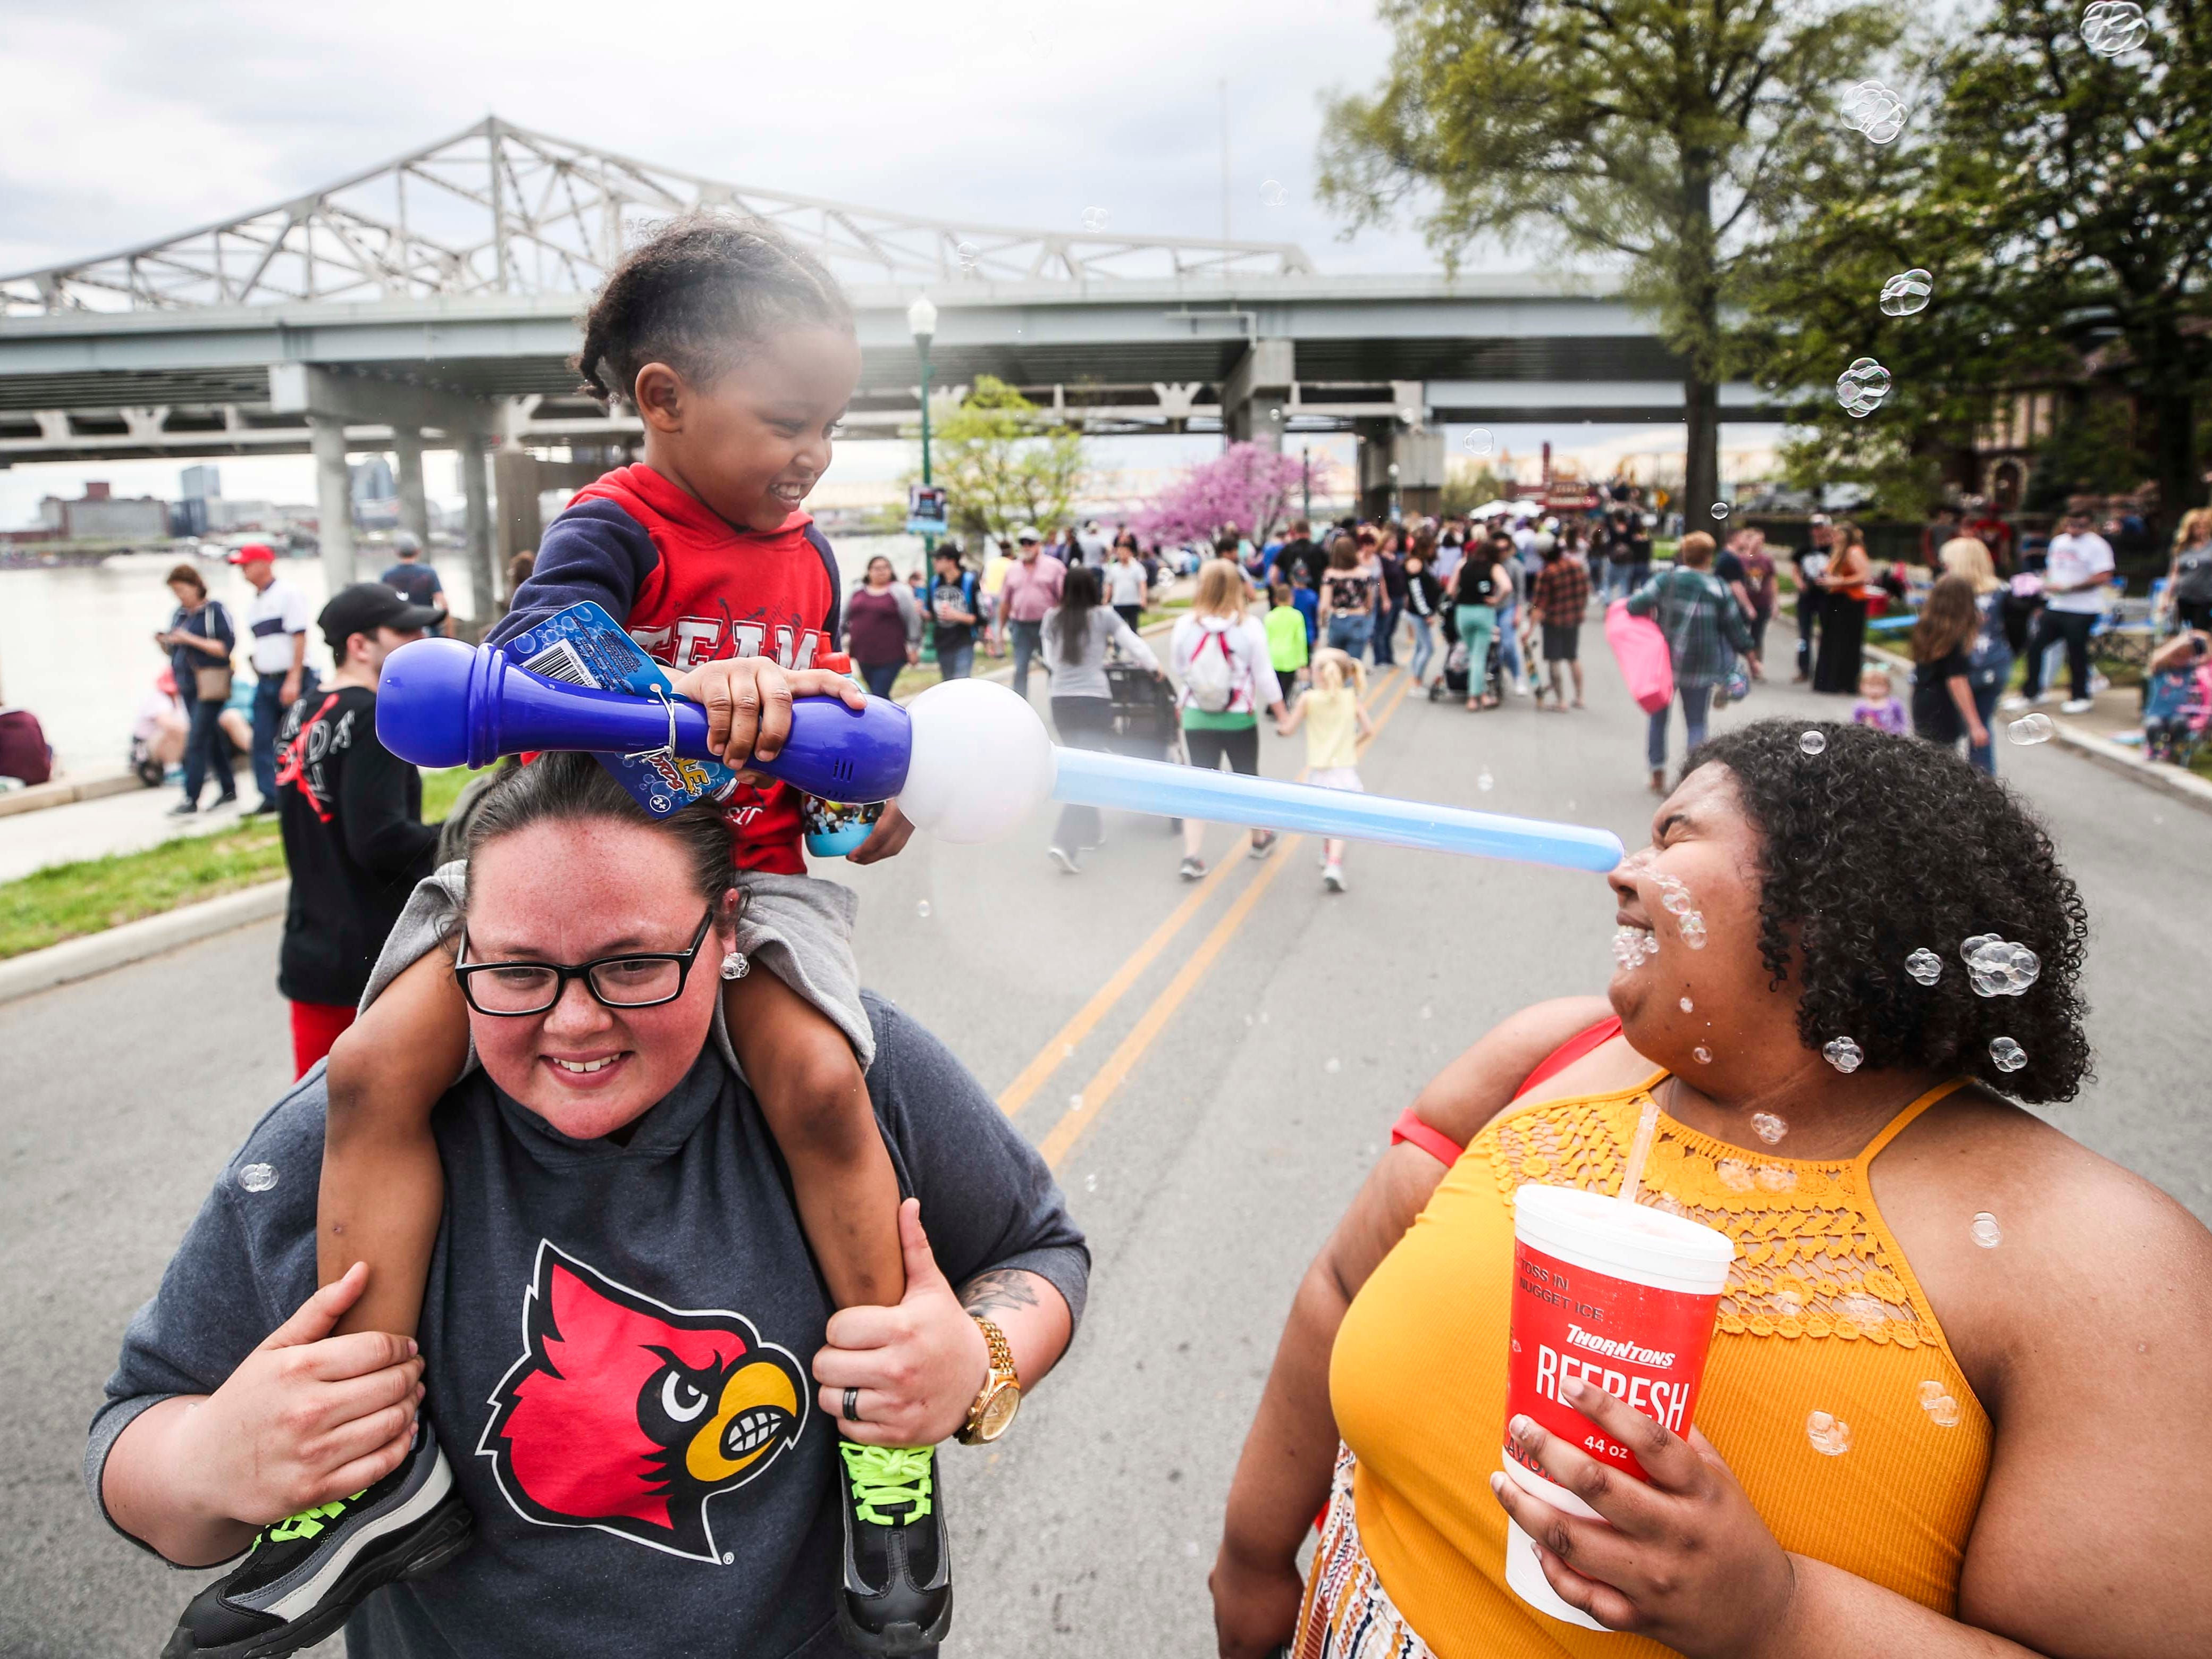 AJ Jones sprays bubbles in the face of his aunt Lydia Jones' face in Jeffersonville during 2019 Thunder Over Louisville. April 13, 2019